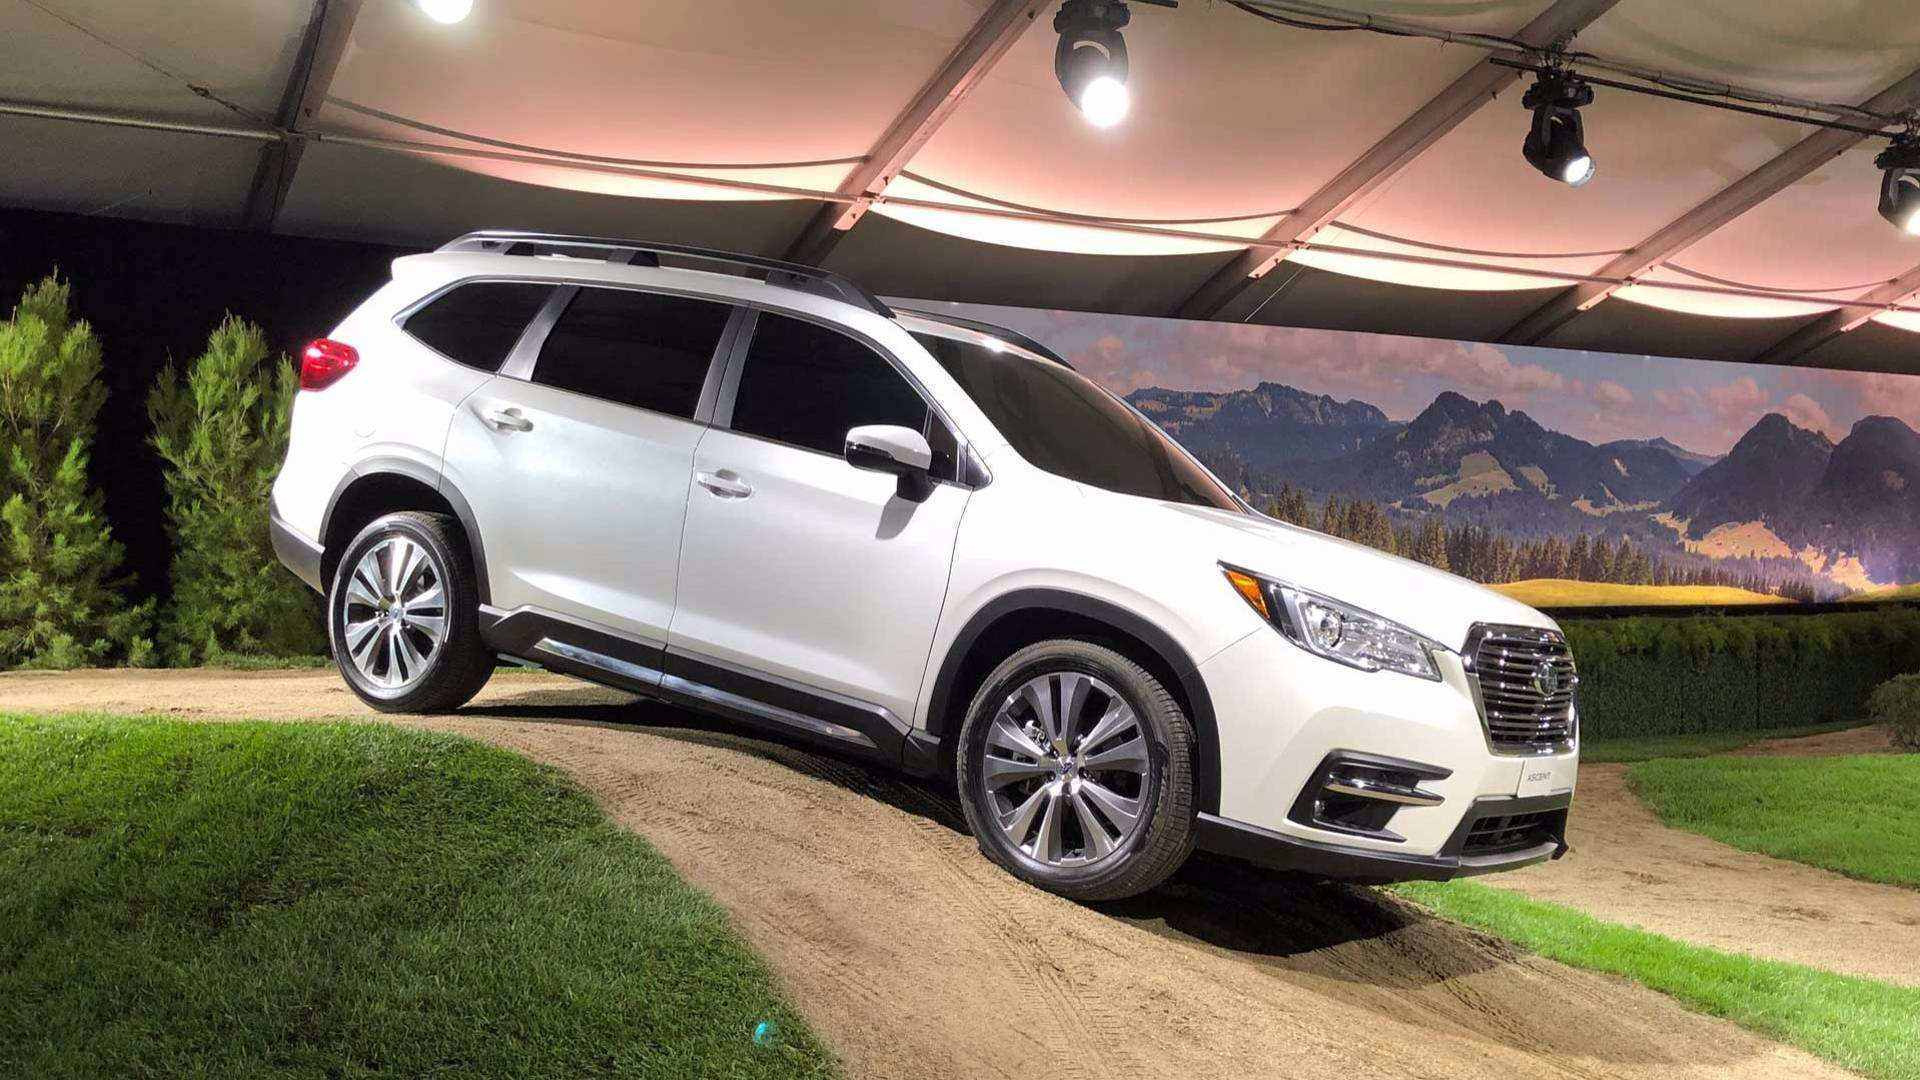 38 Best Review 2019 Subaru Ascent Engine Specs Pictures with 2019 Subaru Ascent Engine Specs